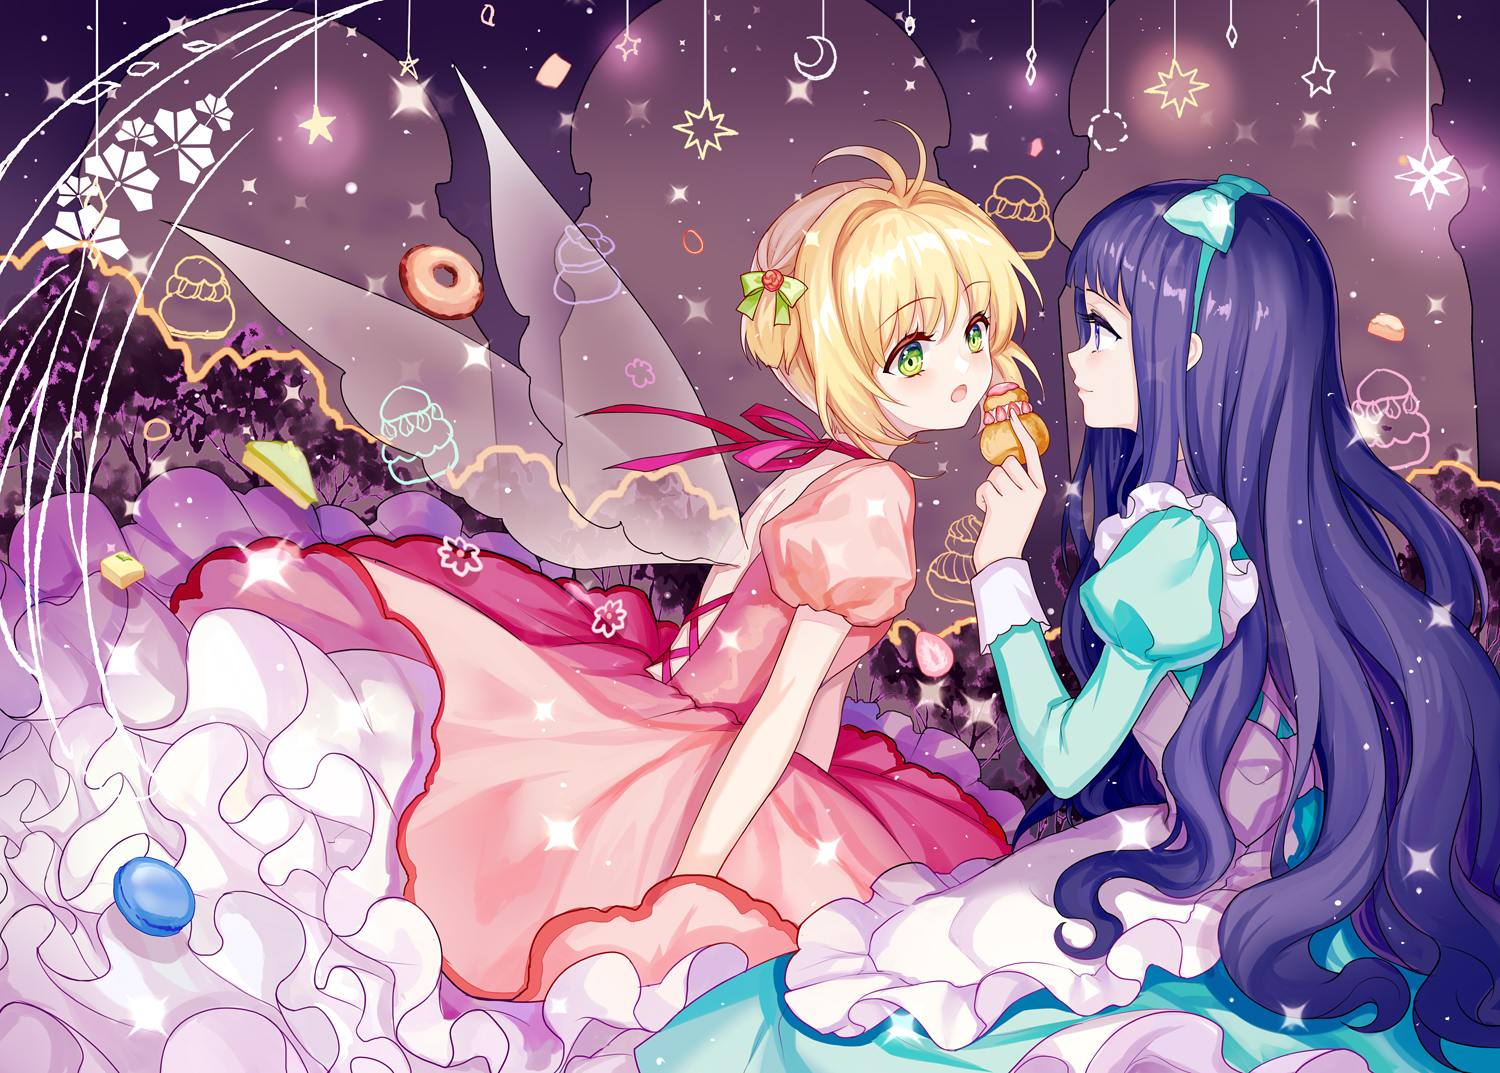 2girls apron blonde_hair blue_eyes blue_hair bow card_captor_sakura choker daidouji_tomoyo food fruit green_eyes headband kinomoto_sakura lolita_fashion long_hair mirror_(xilu4) ribbons short_hair strawberry wings